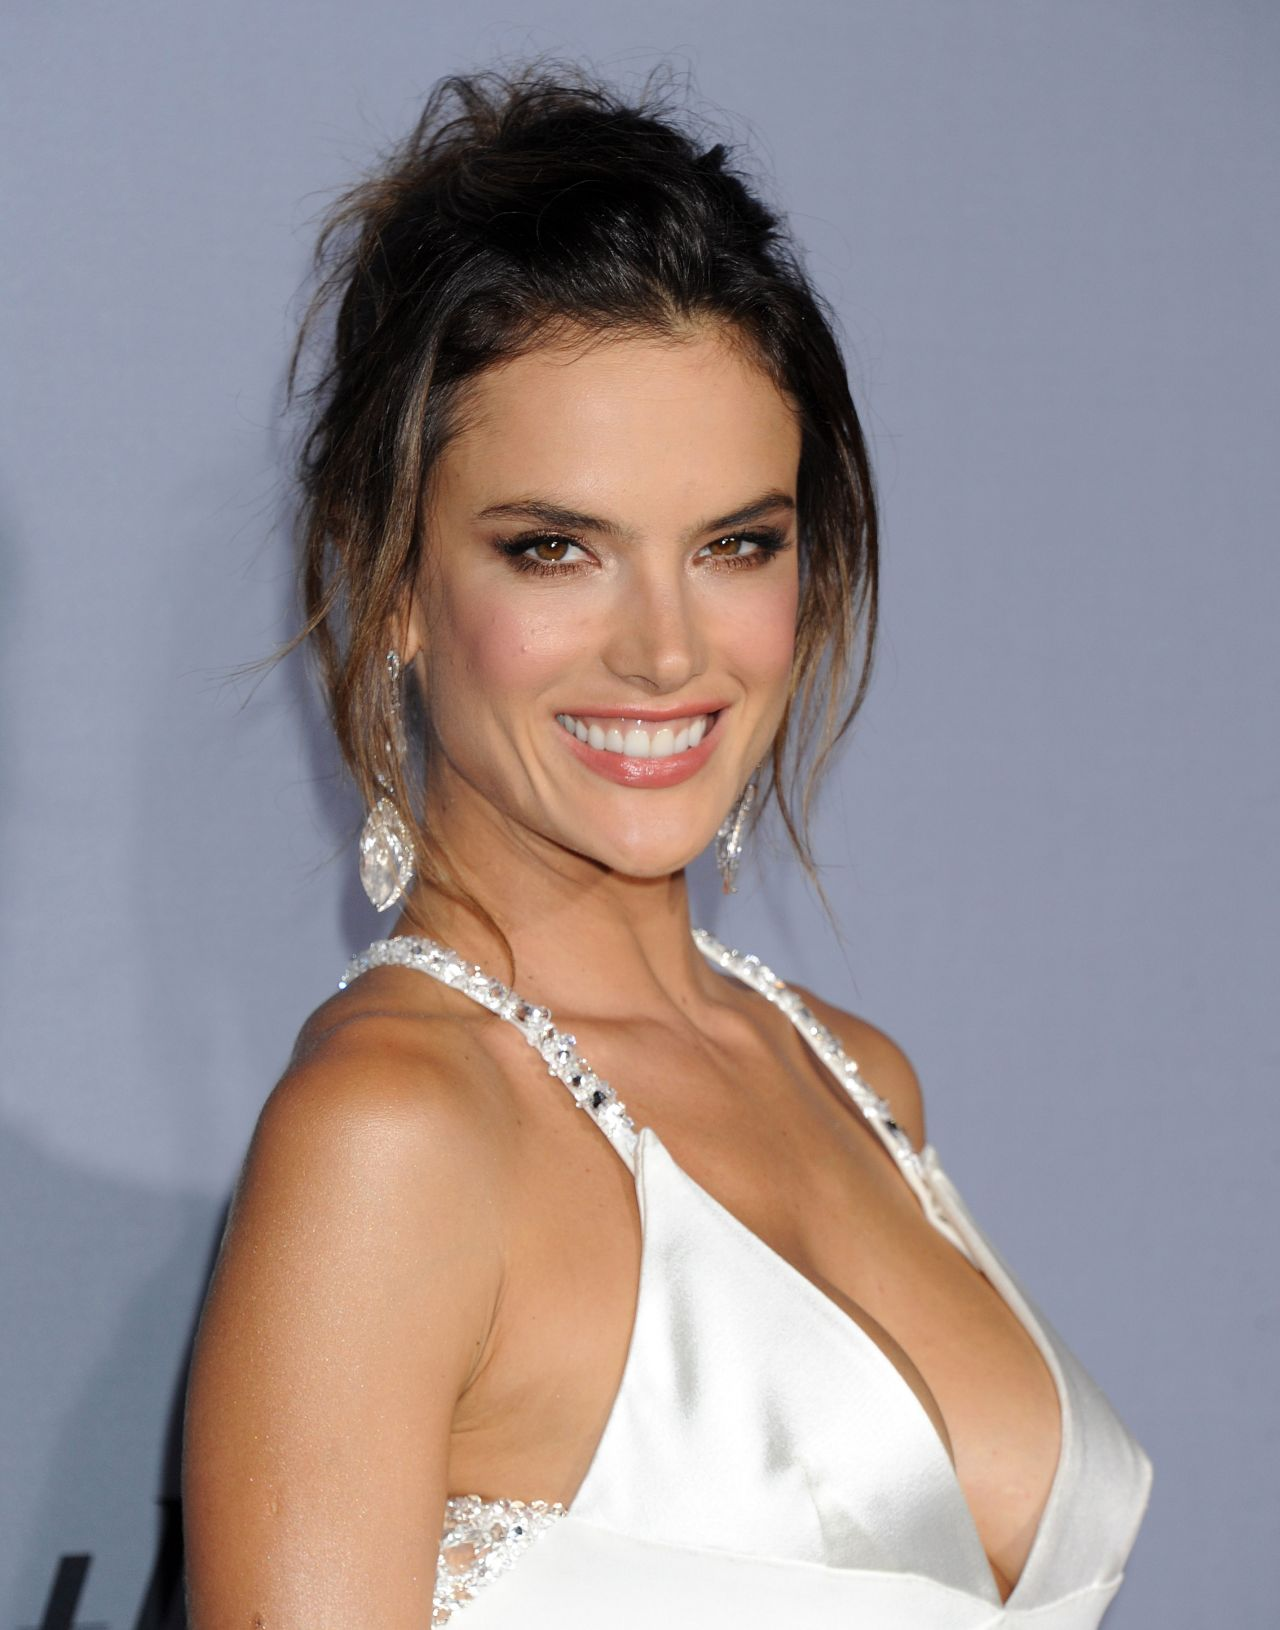 Alessandra Ambrosio naked (67 photos) Cleavage, 2020, cleavage